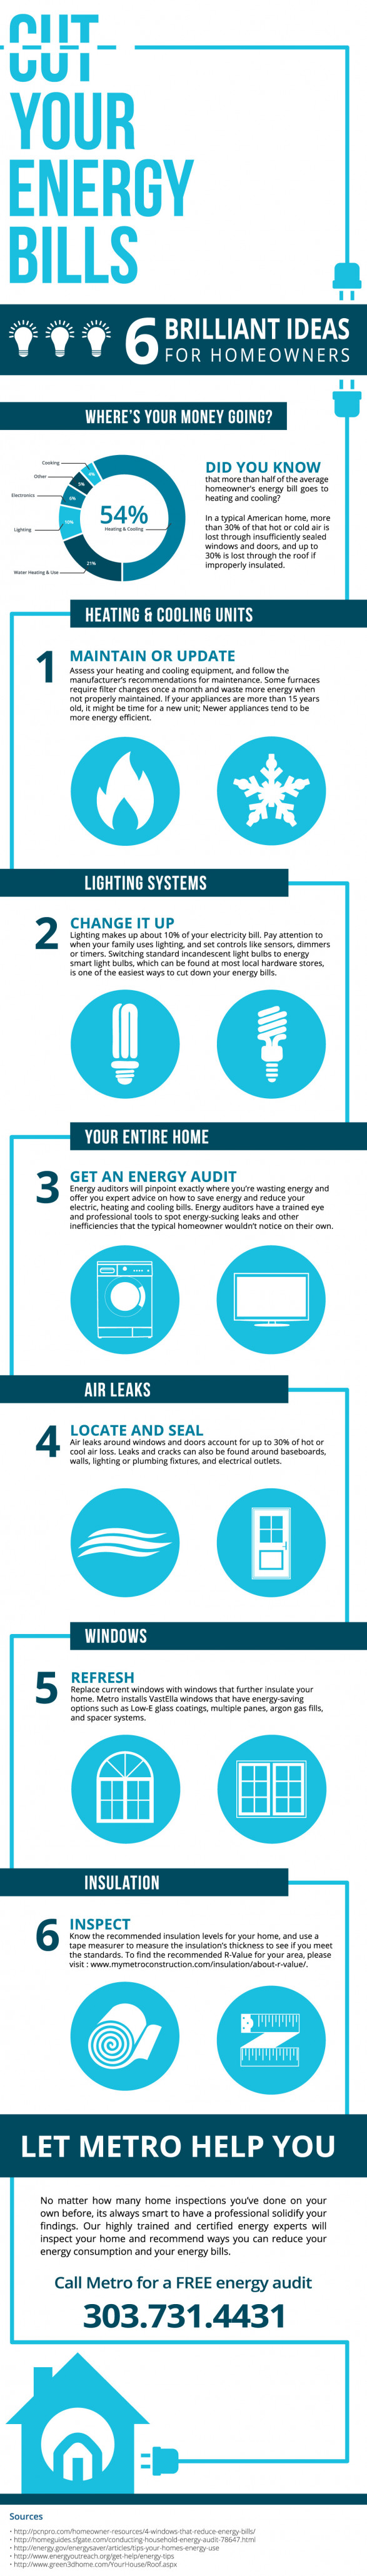 6 Brilliant Ways to Cut Energy Bills